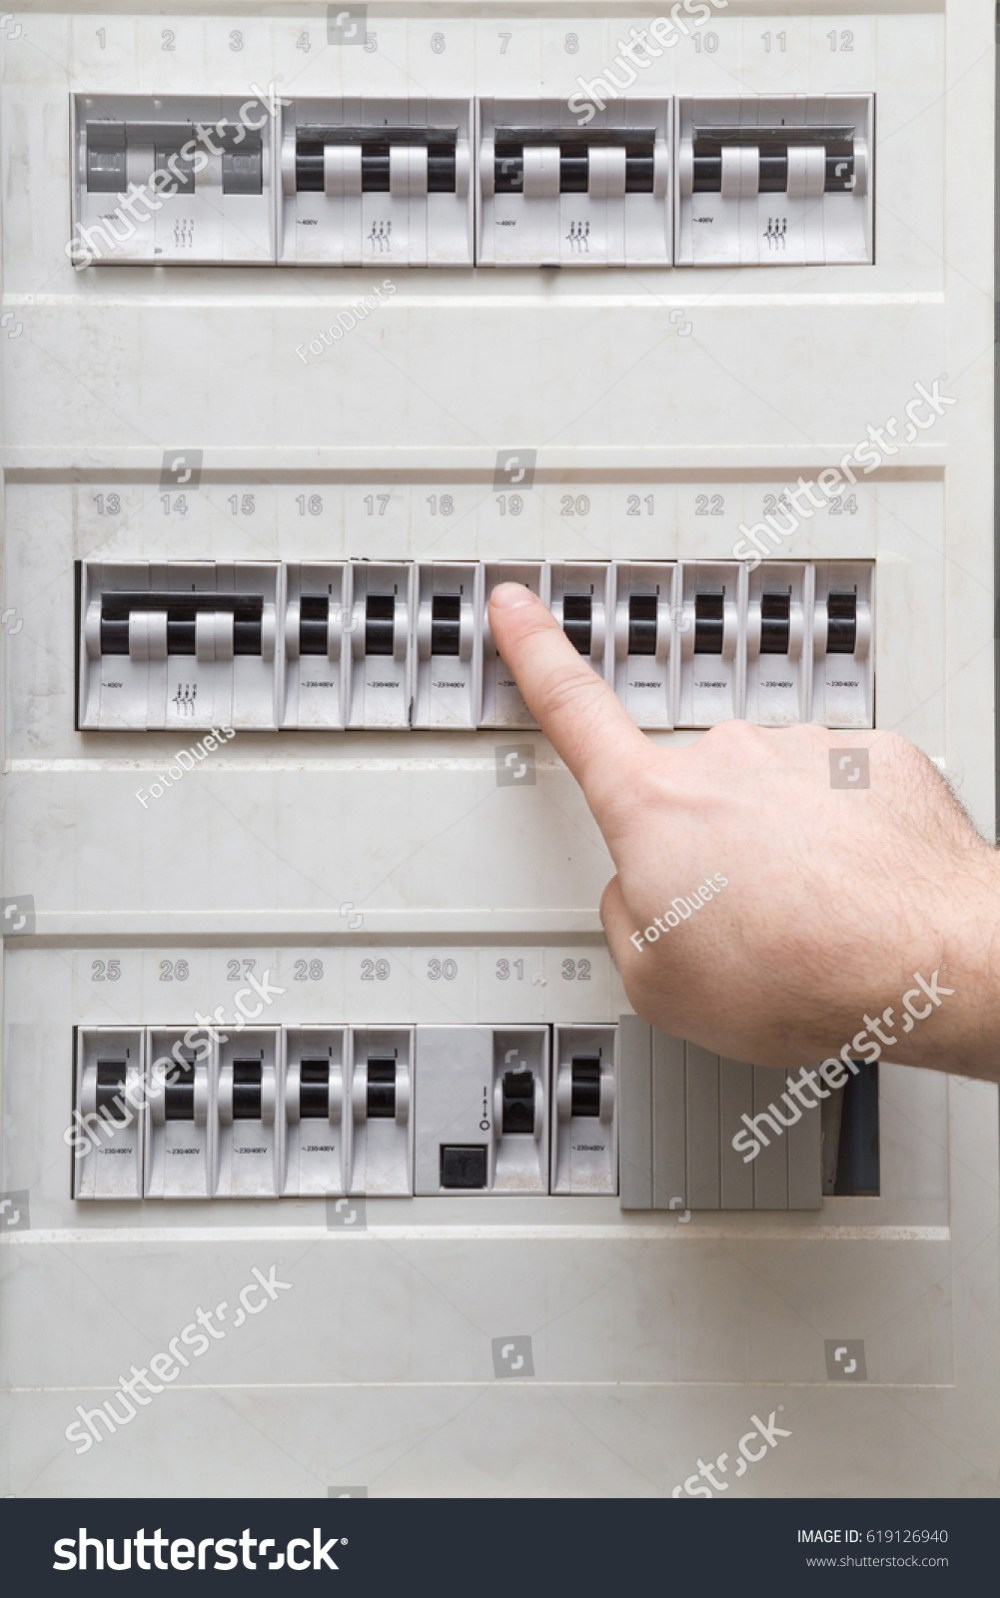 medium resolution of man s finger checking an electricity in the fuse box dangerous activity indoor